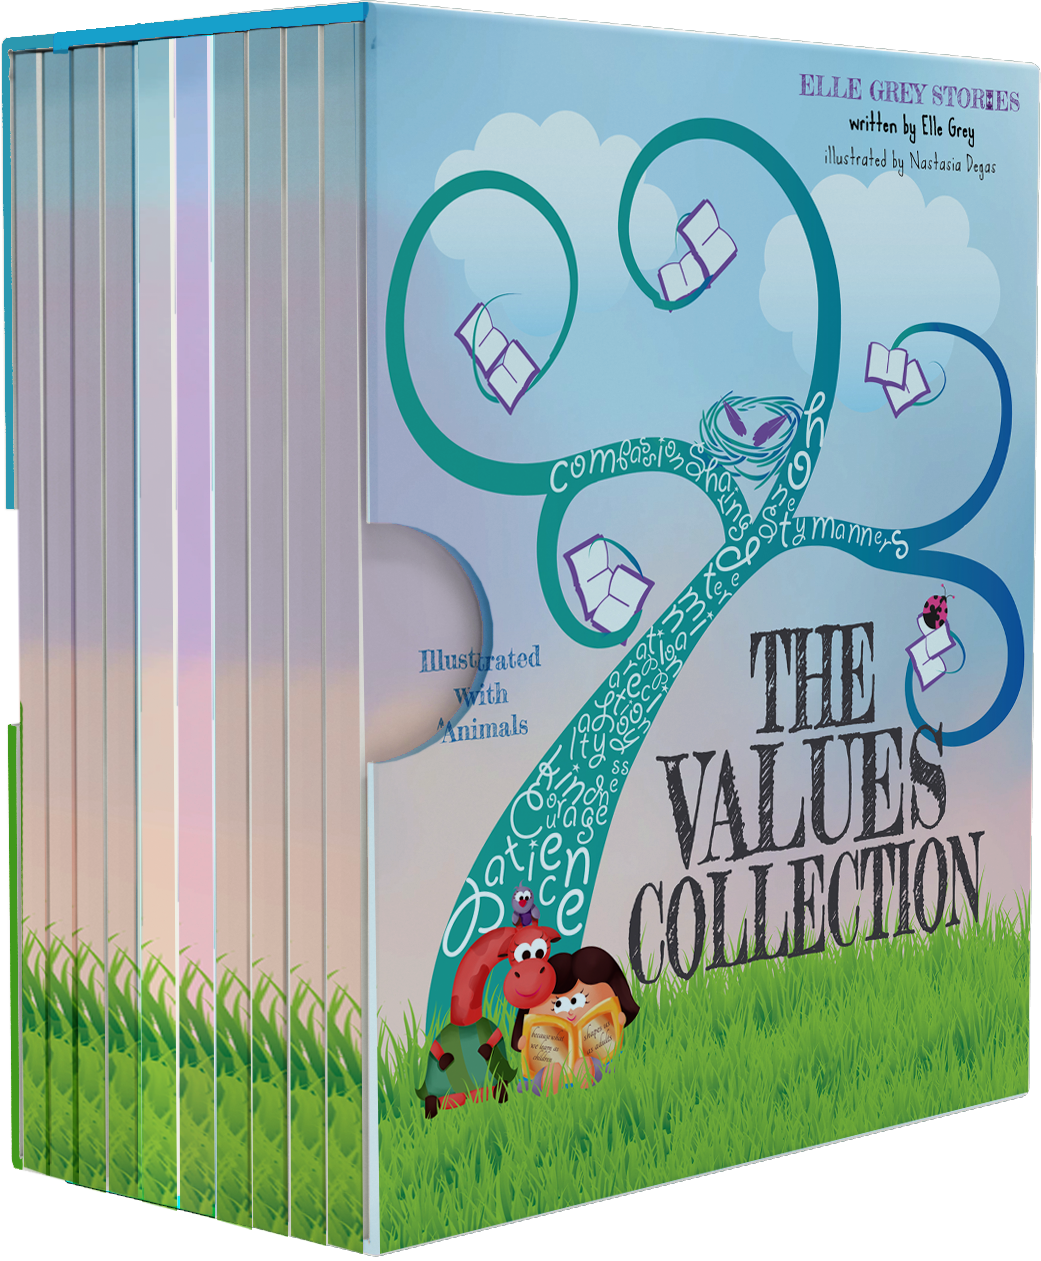 the value books.png